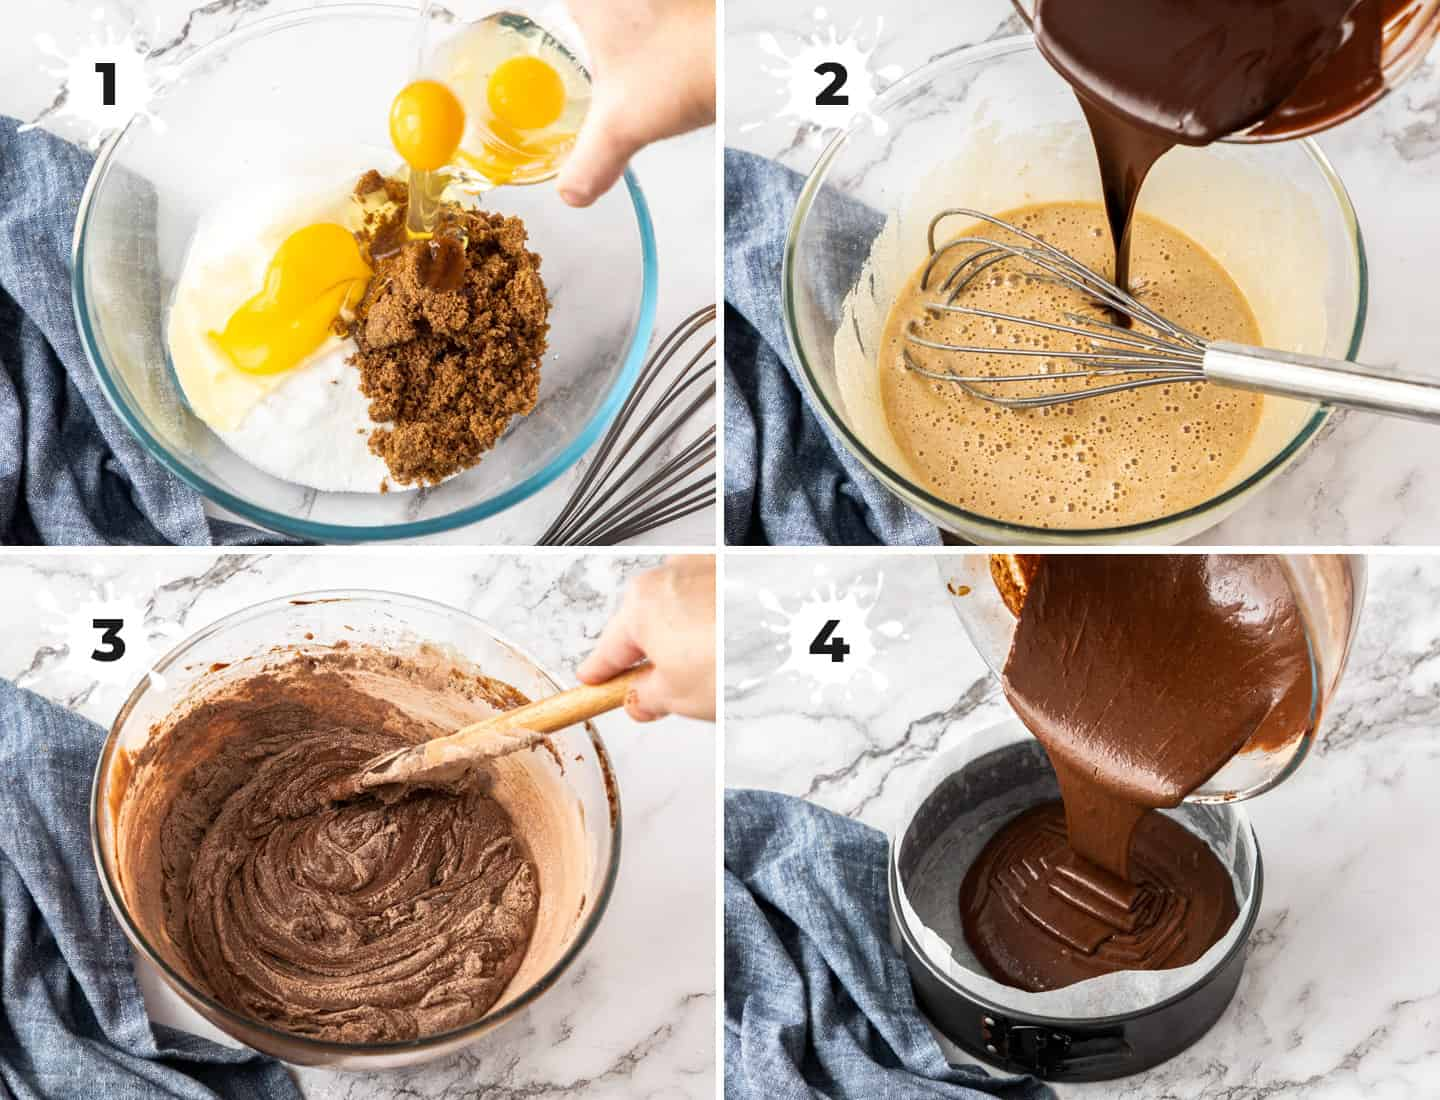 A collage of 4 images showing mixing the chocolate brownie batter in a glass bowl.